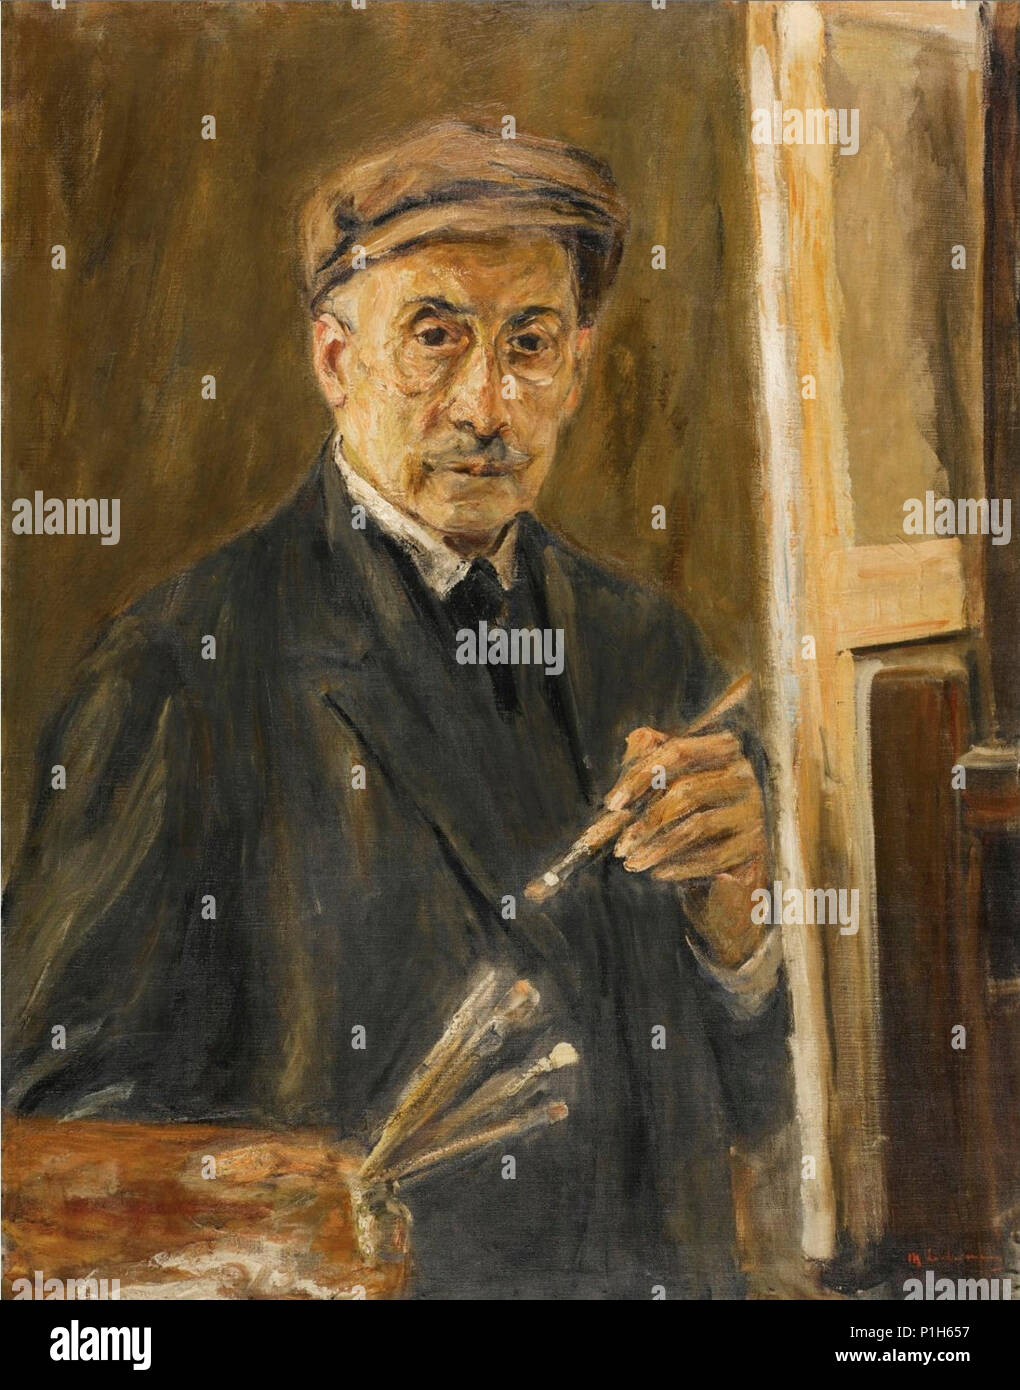 'Self-Portrait Wearing a Coat with Brush and Palette' by Max Liebermann. - Stock Image